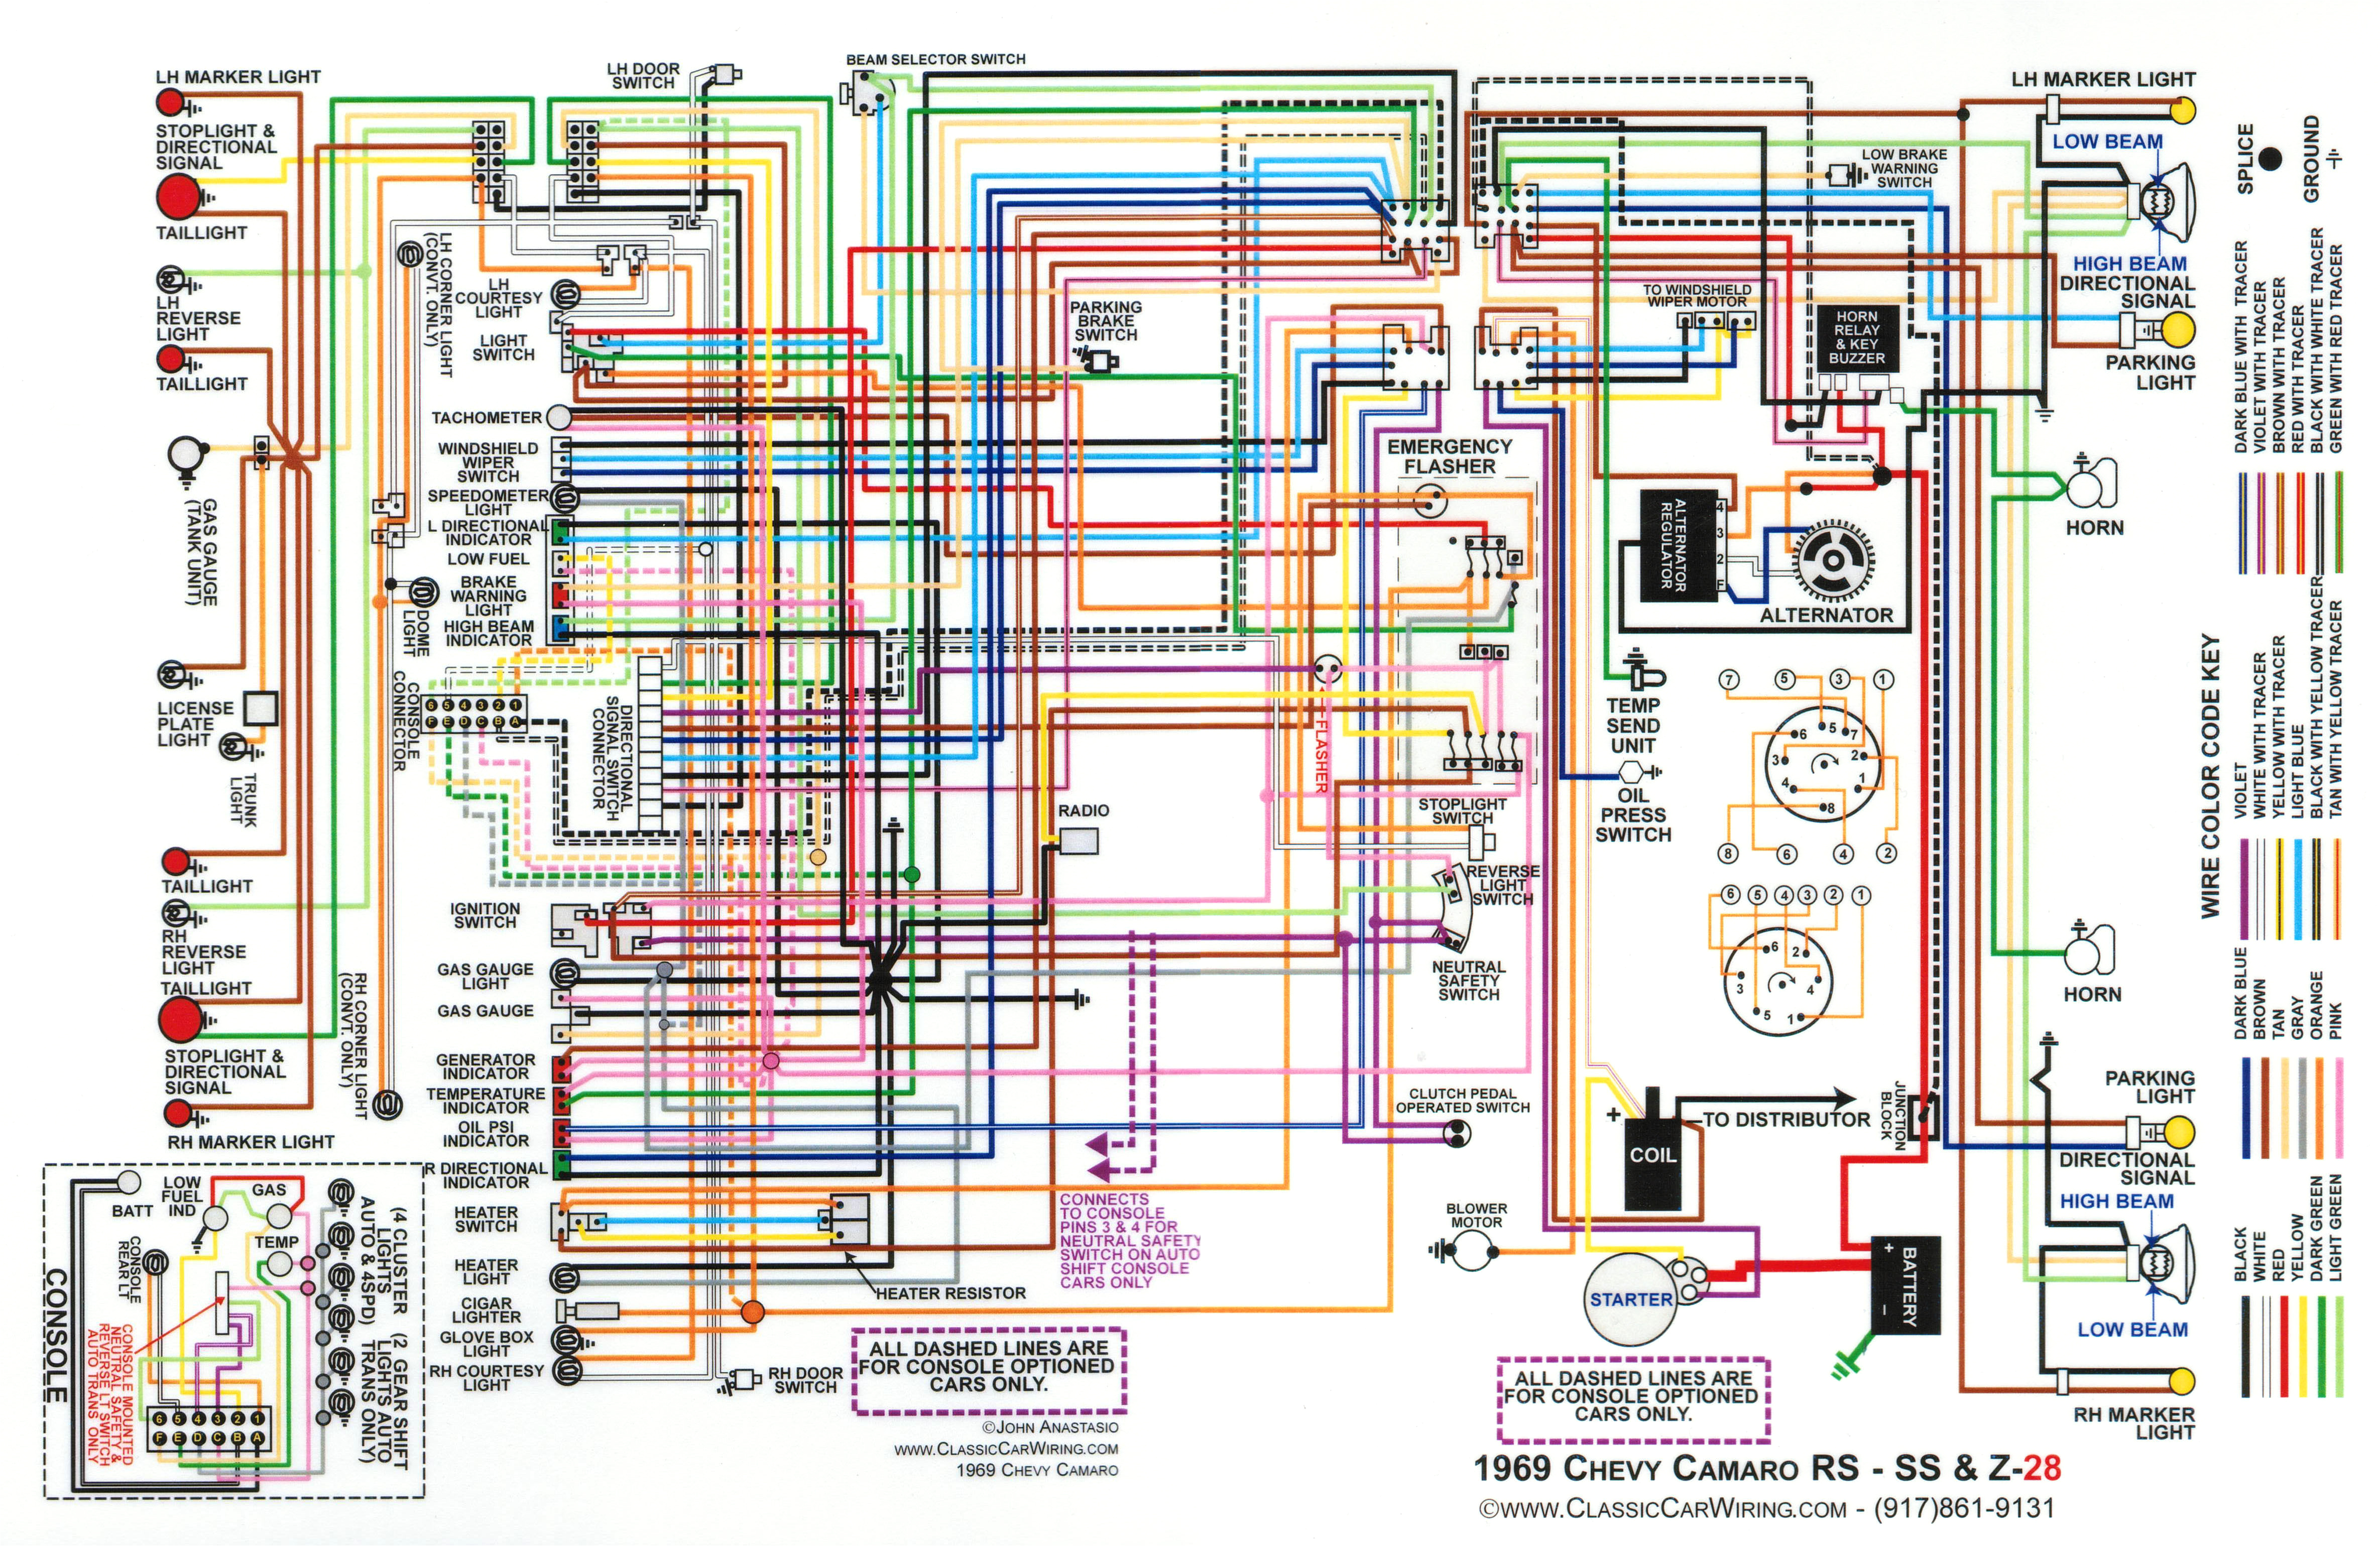 1967 chevy camaro rs wiring diagram wiring diagram review diagram furthermore painless wiring harness diagram moreover 1967